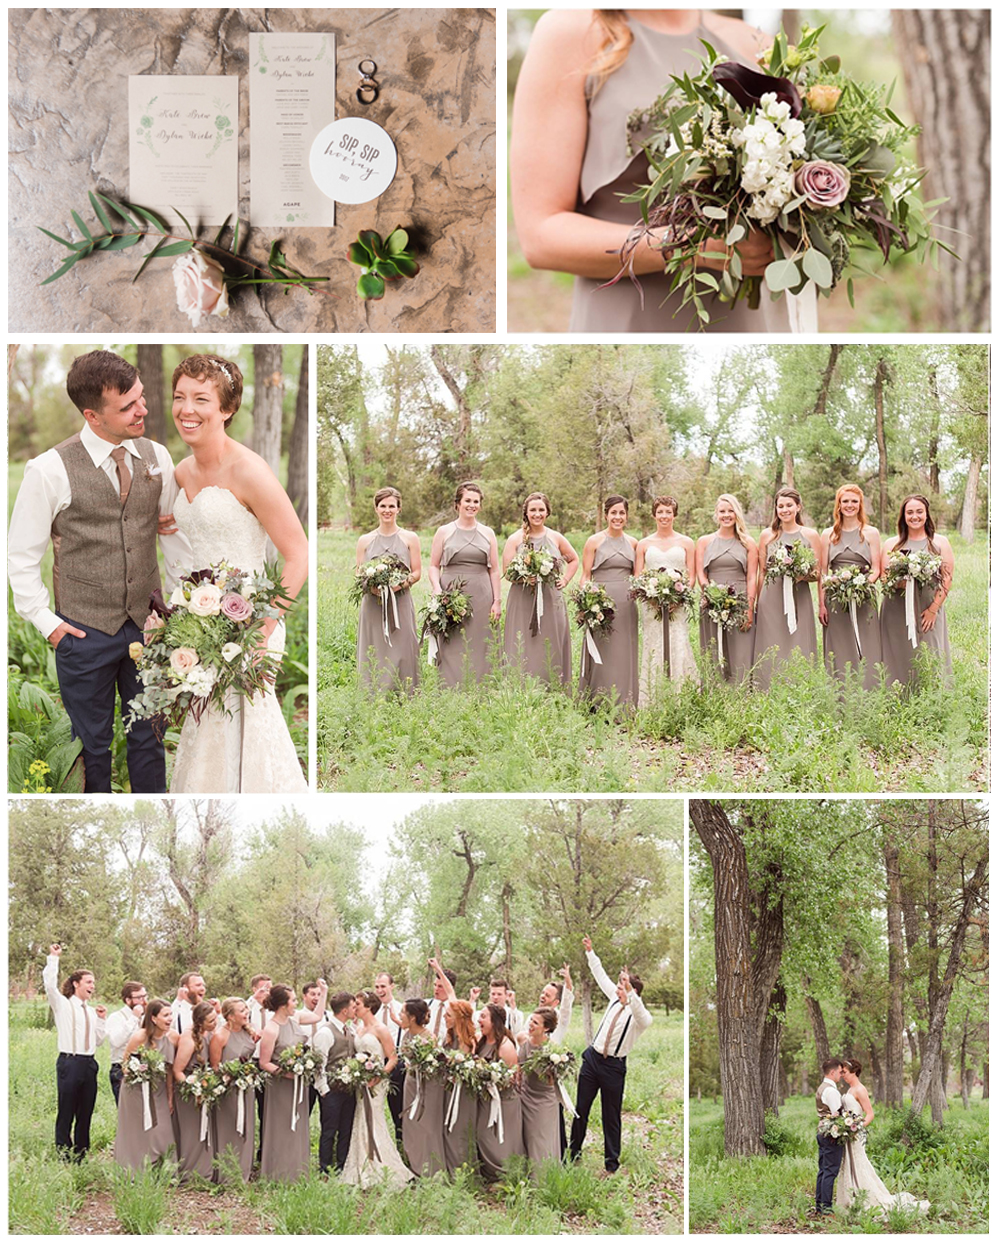 Kate+Dylan-Billings MT-rustic wedding.jpg